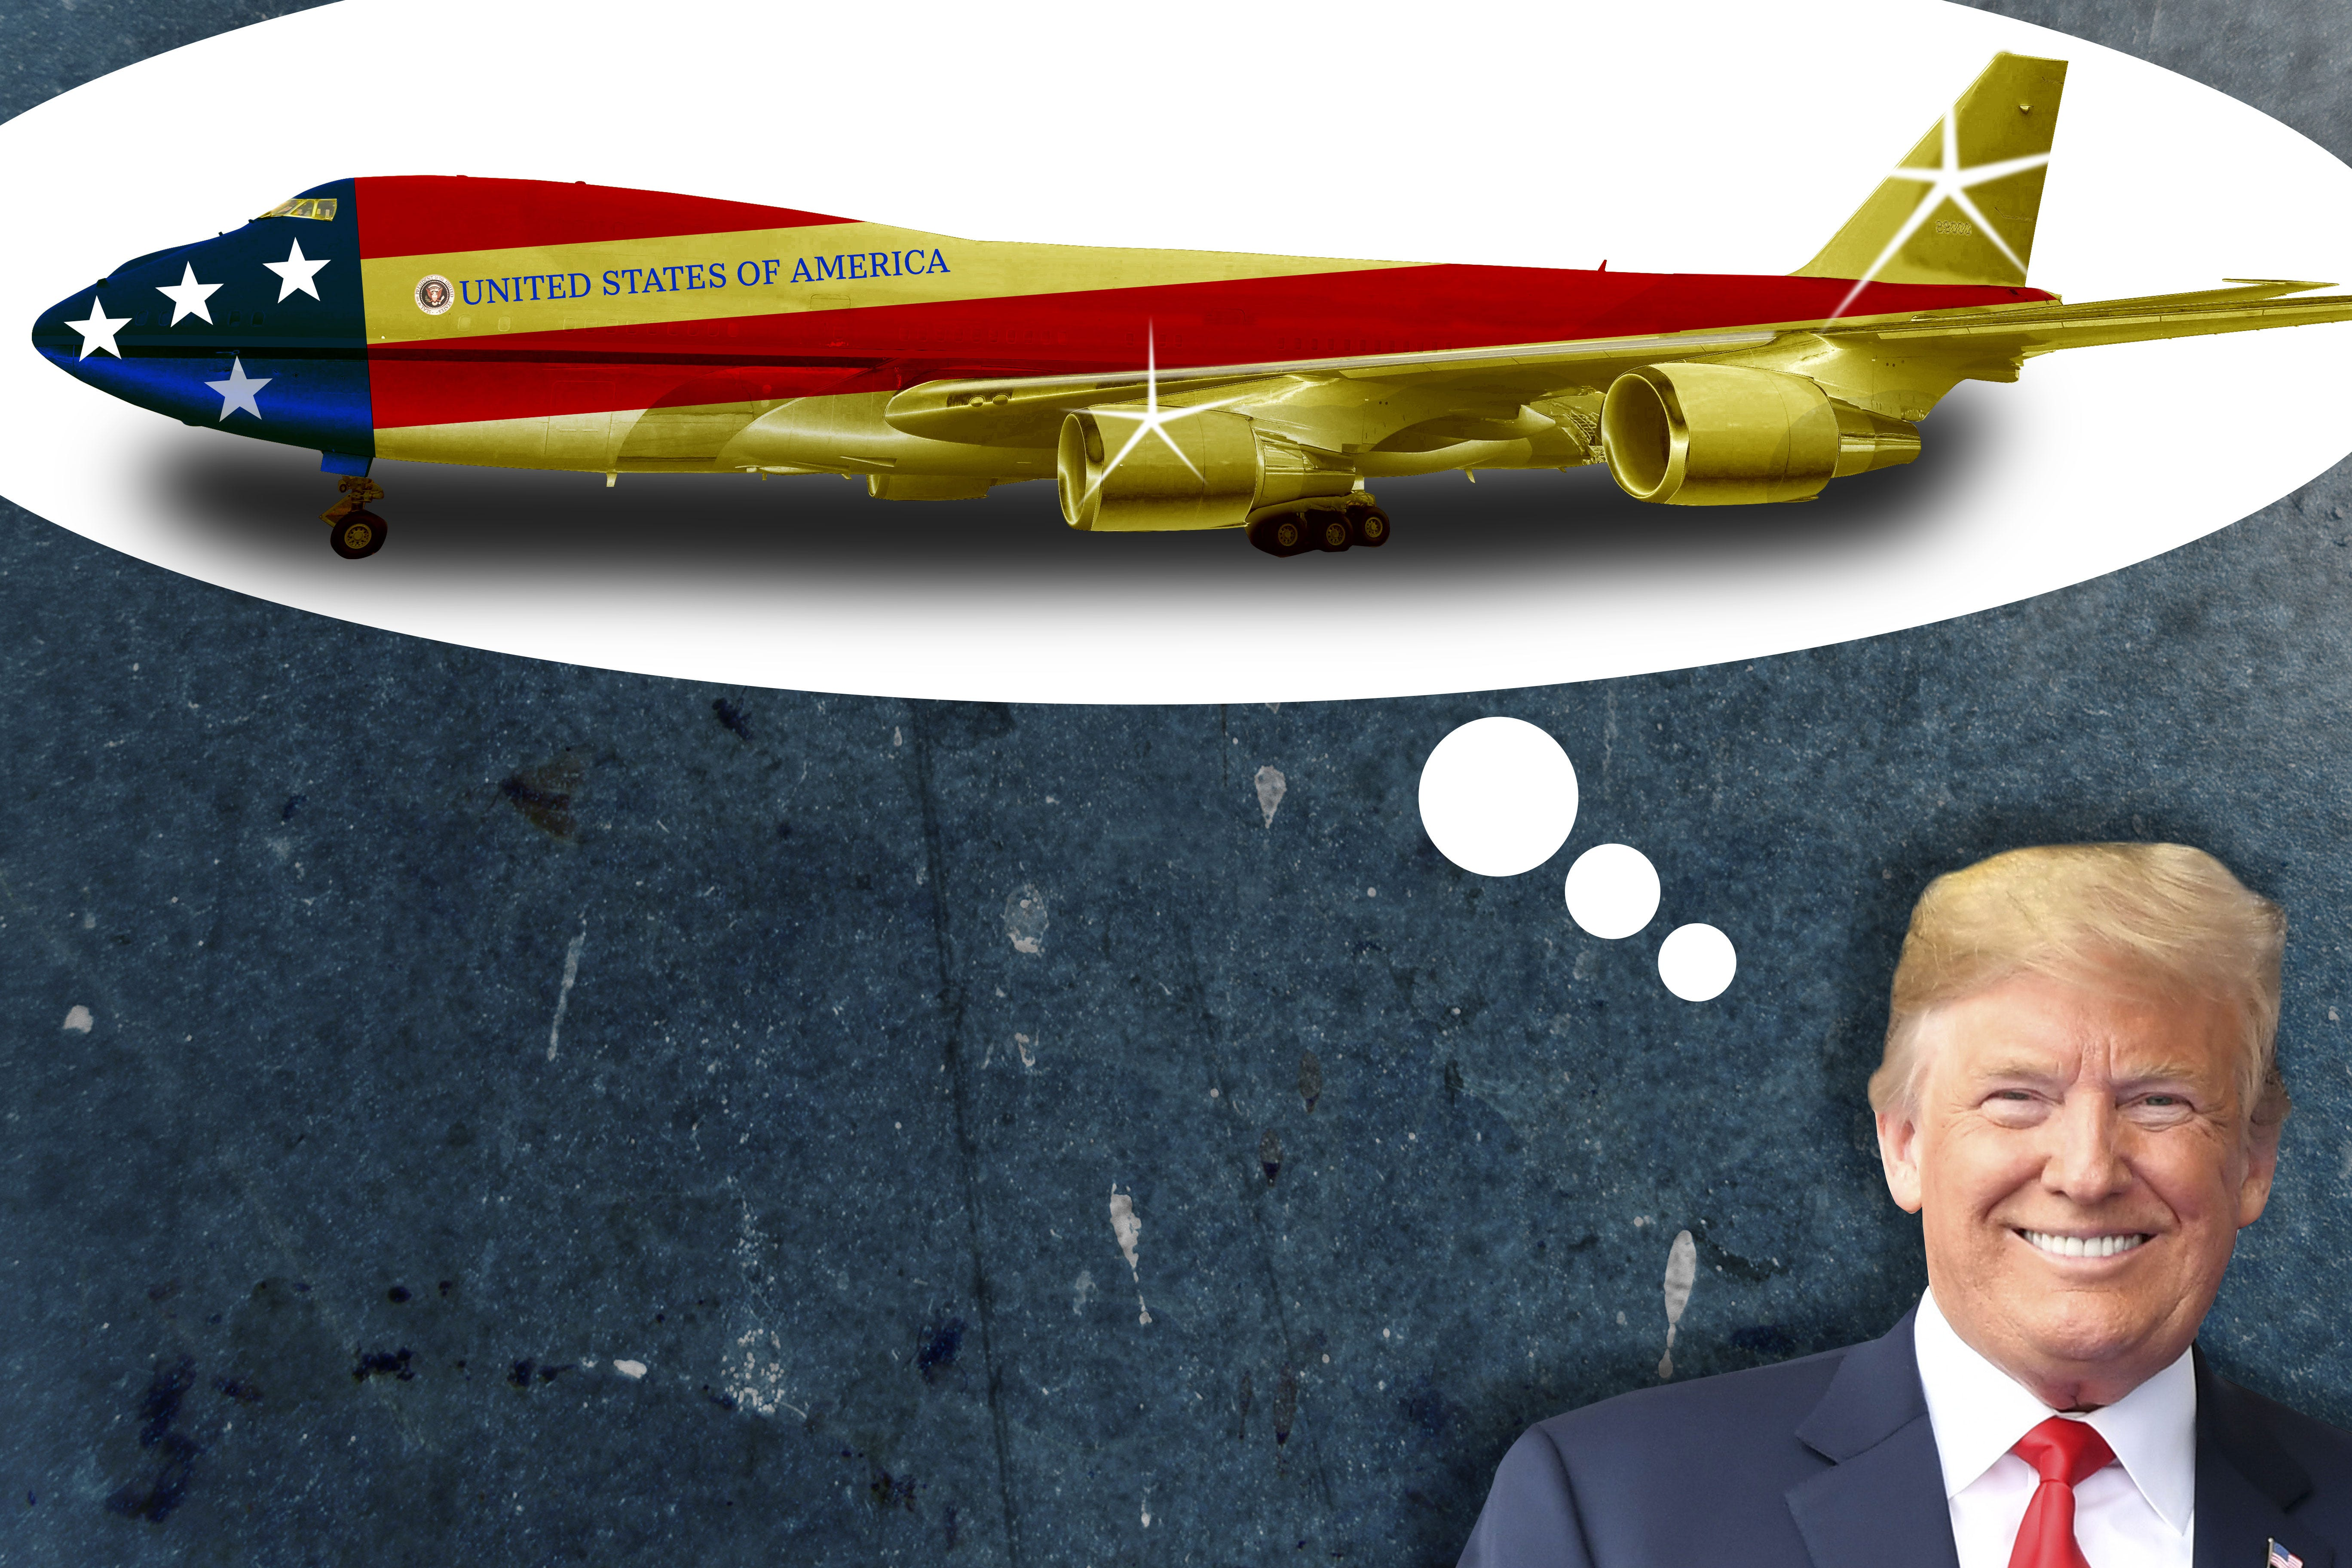 Here S What A New Air Force One Design Could Look Like